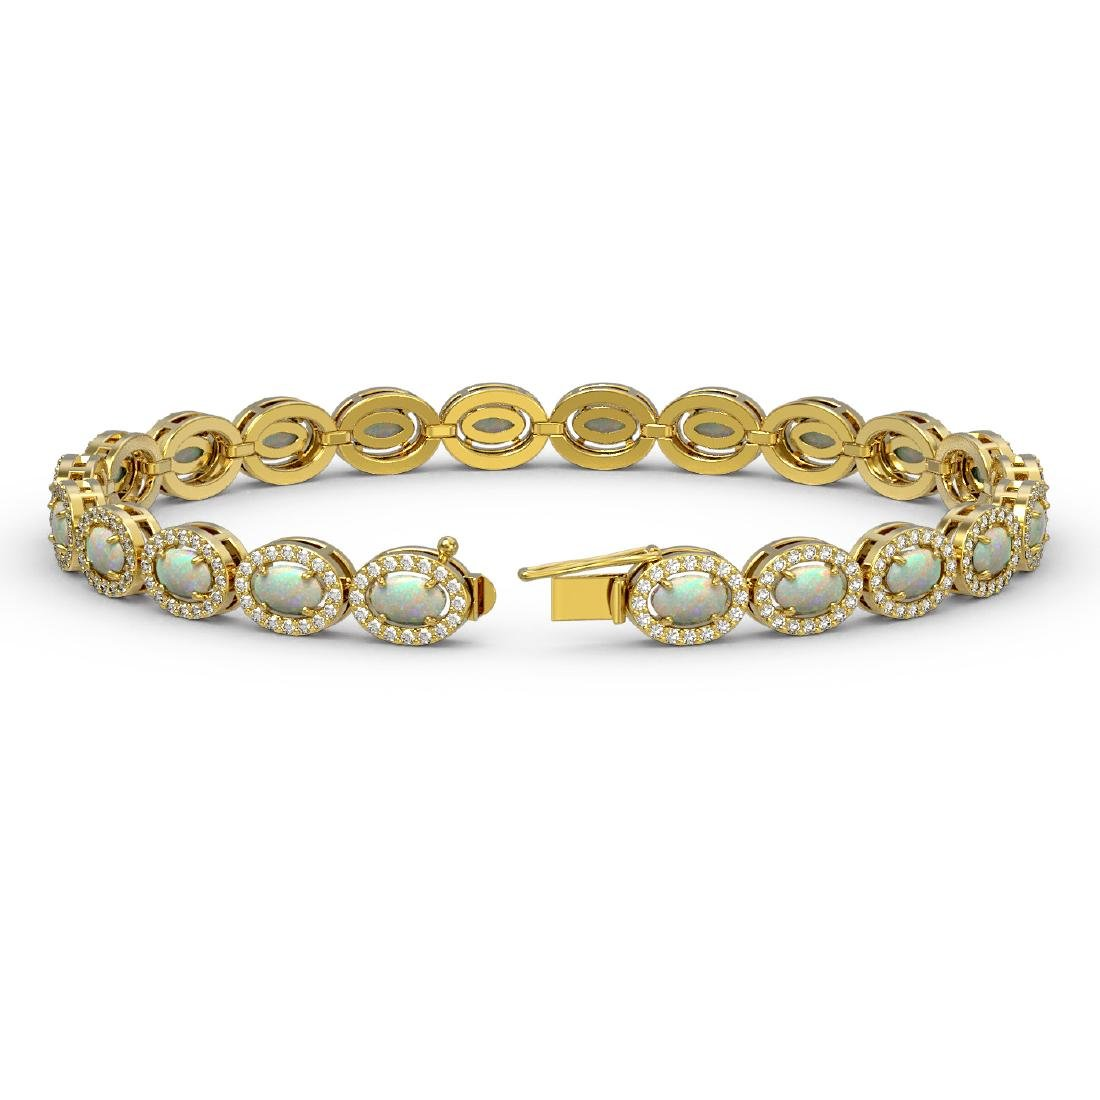 8.28 CTW Opal & Diamond Halo Bracelet 10K Yellow Gold - 2